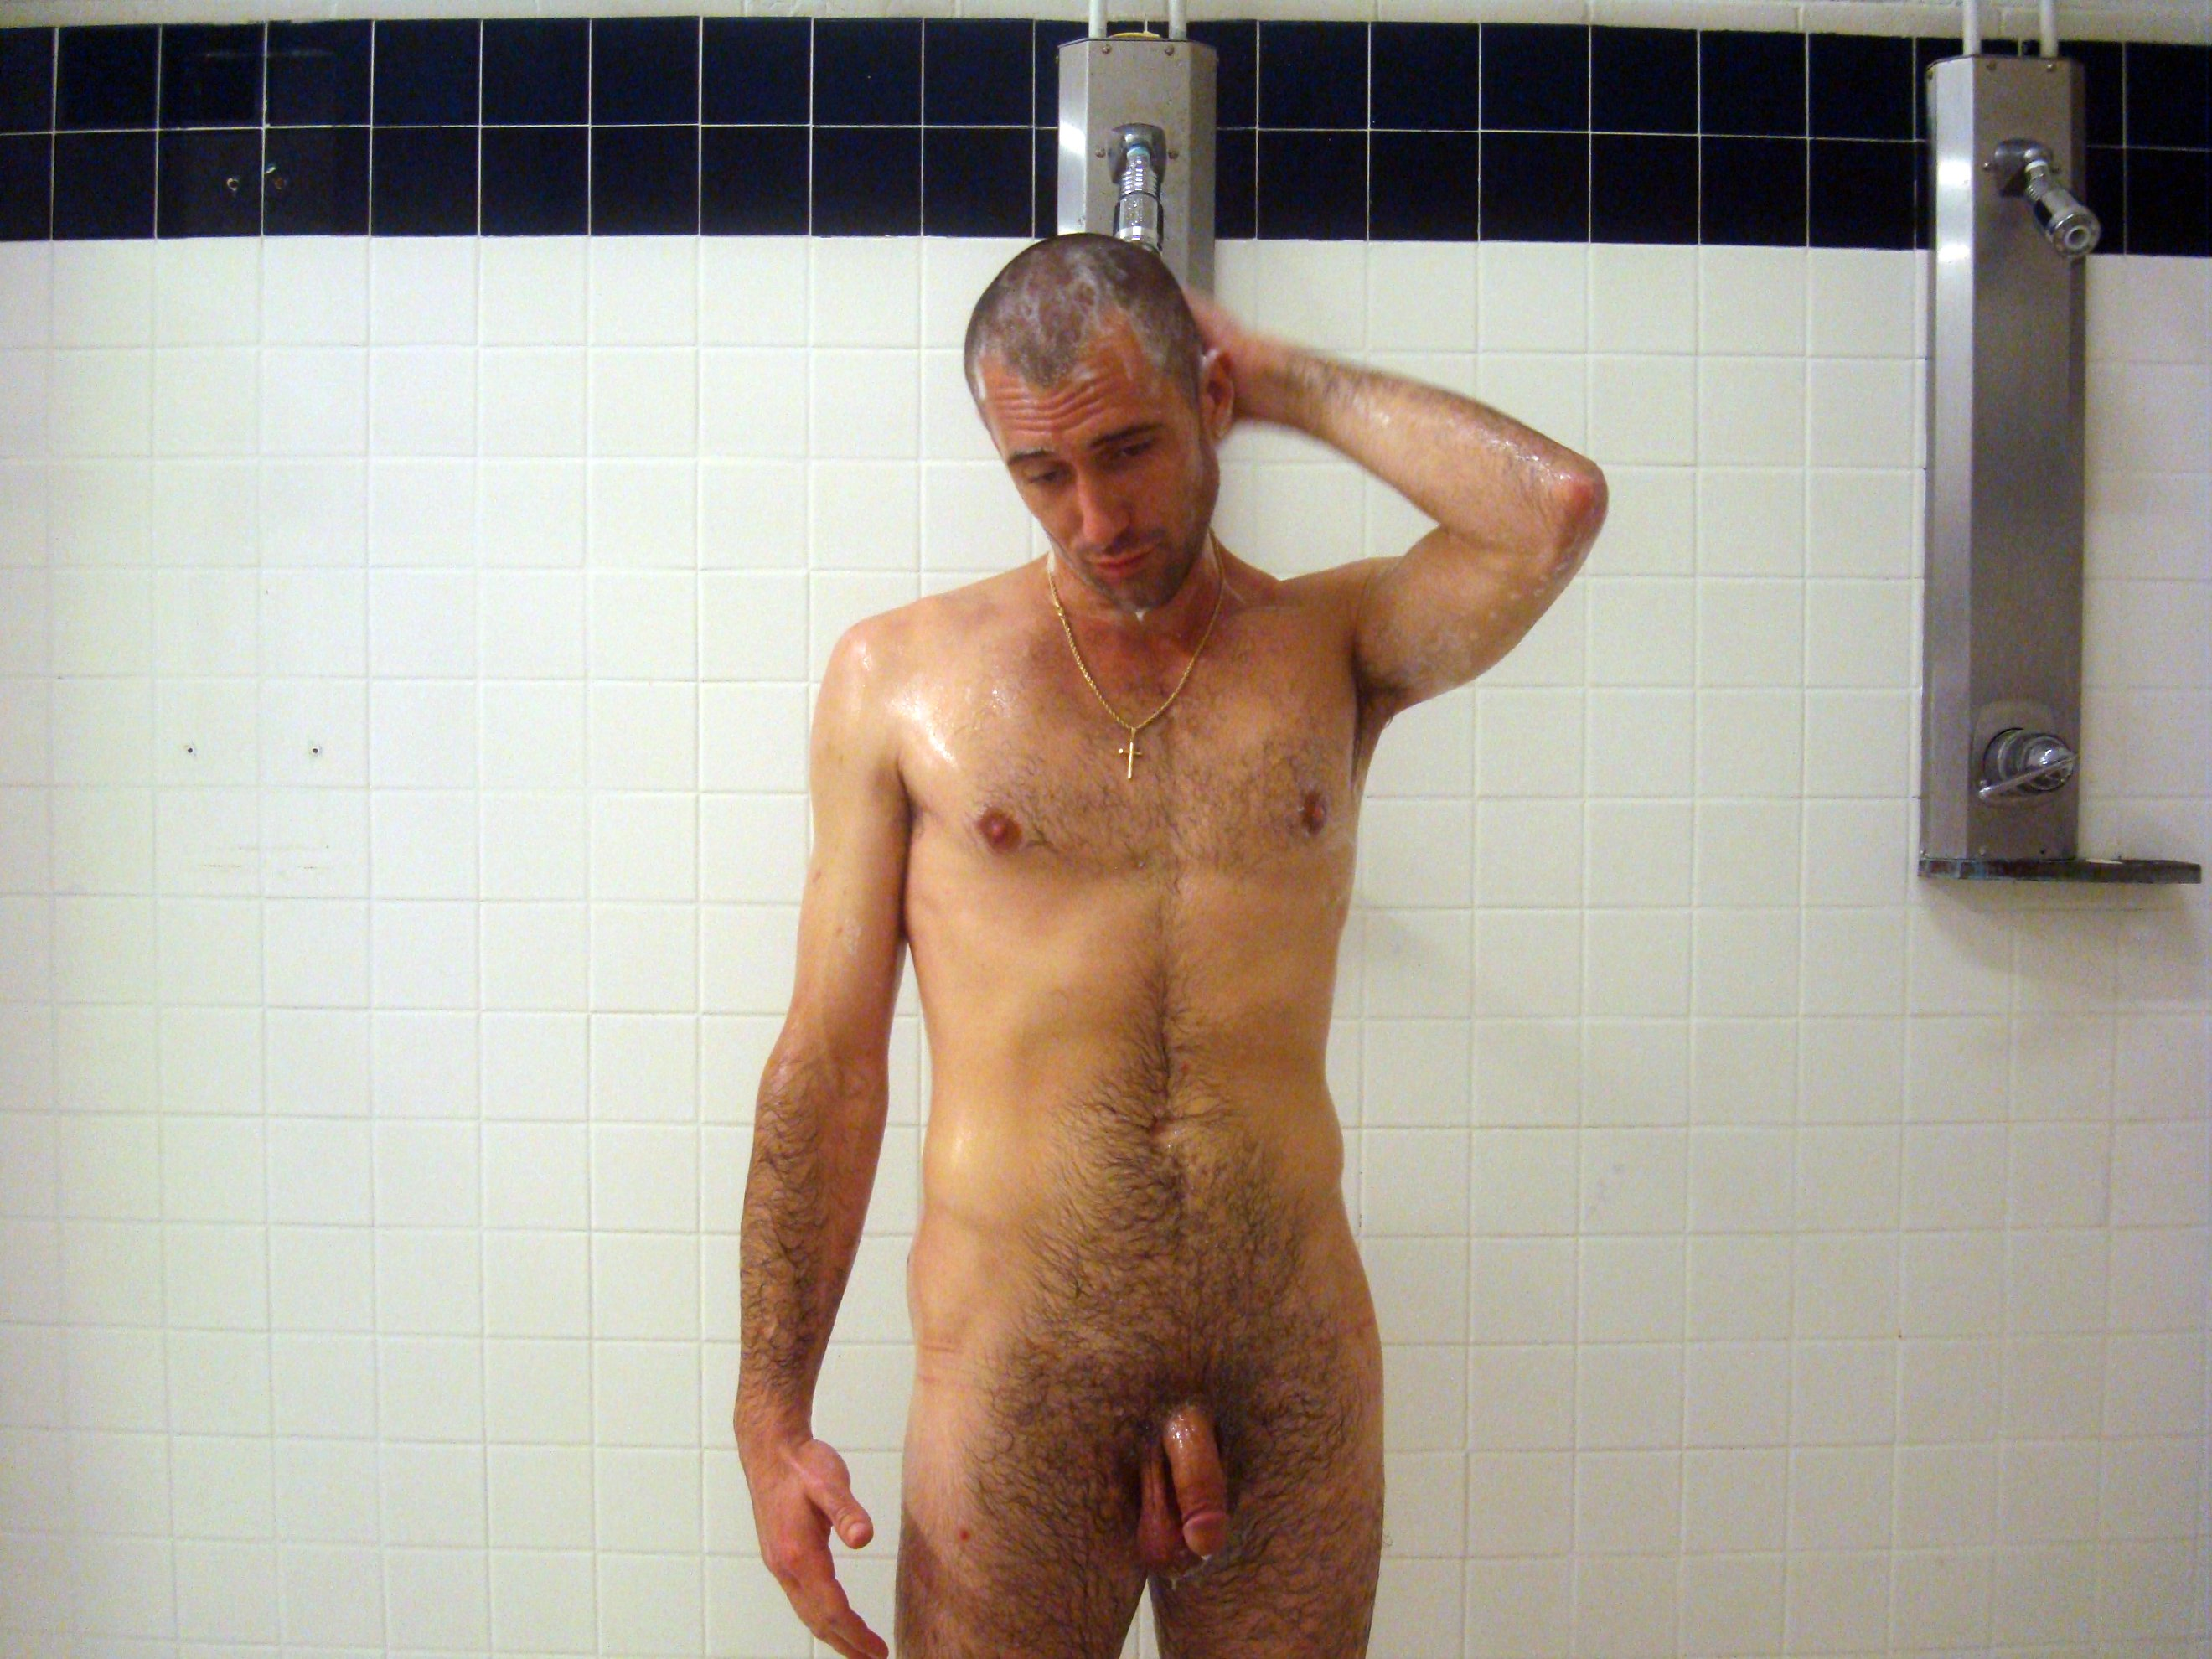 Remarkable, Men nude male public agree, useful